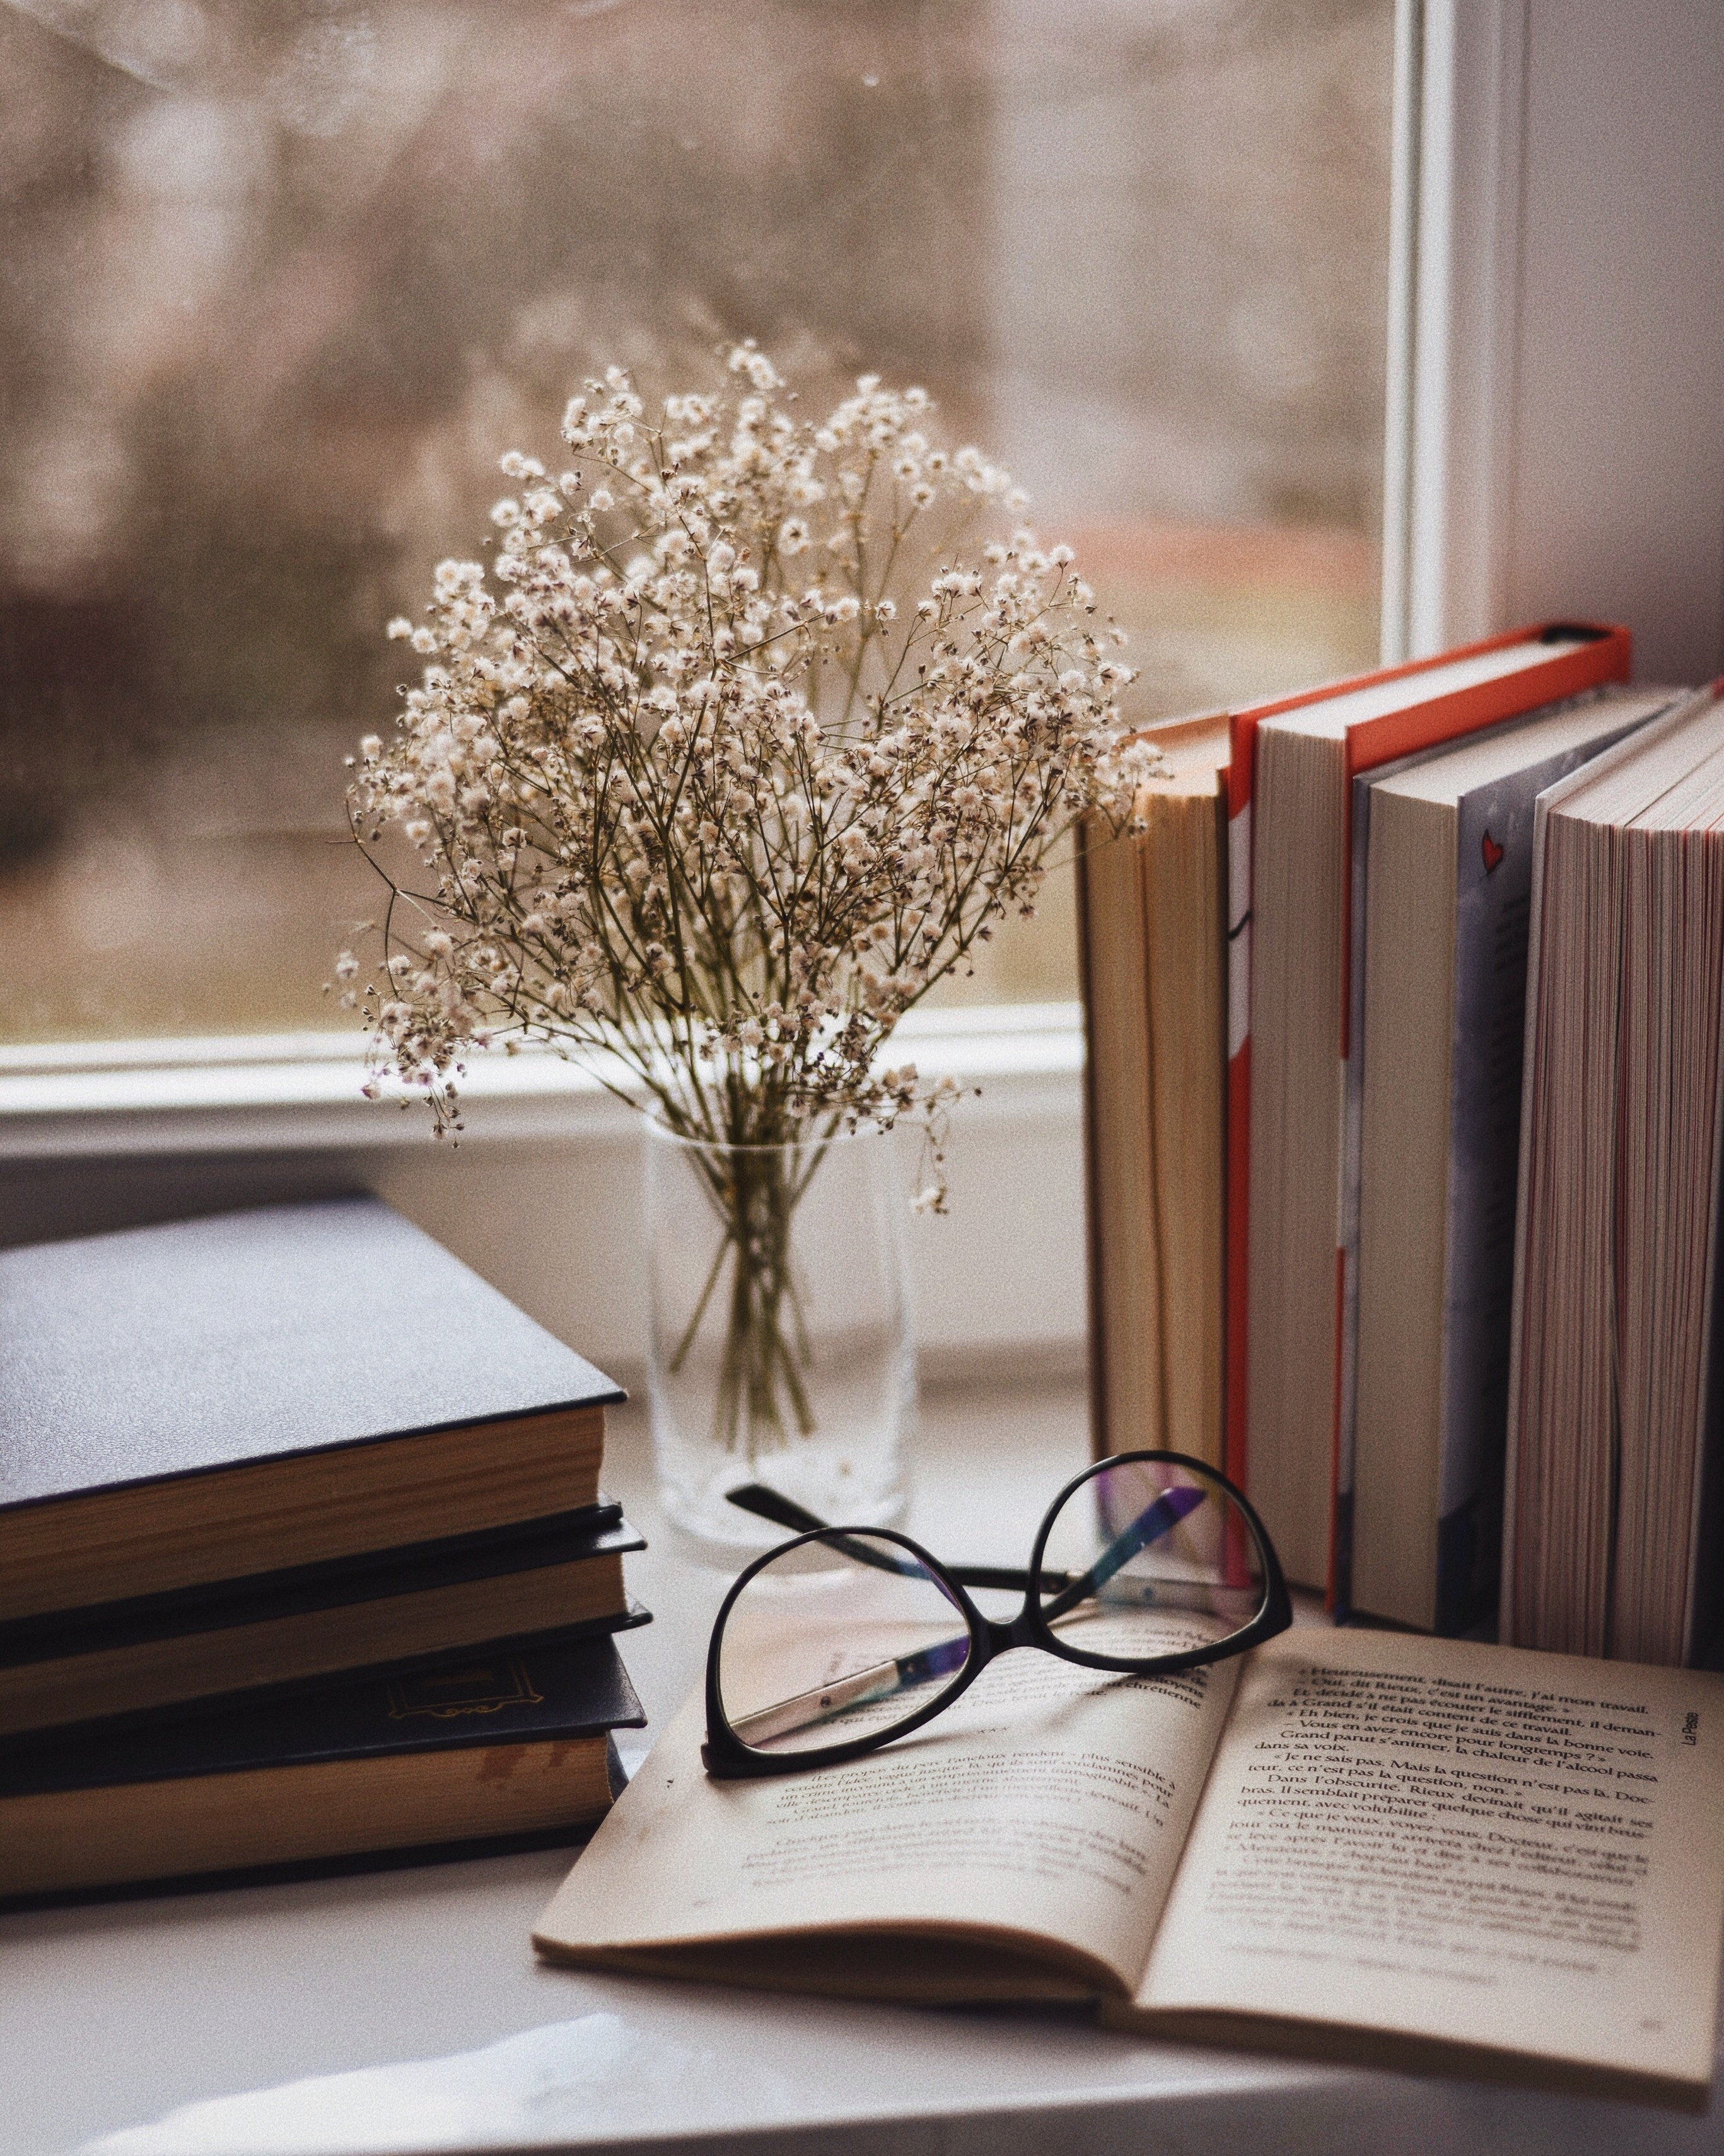 Best Books wallpapers for phone screen